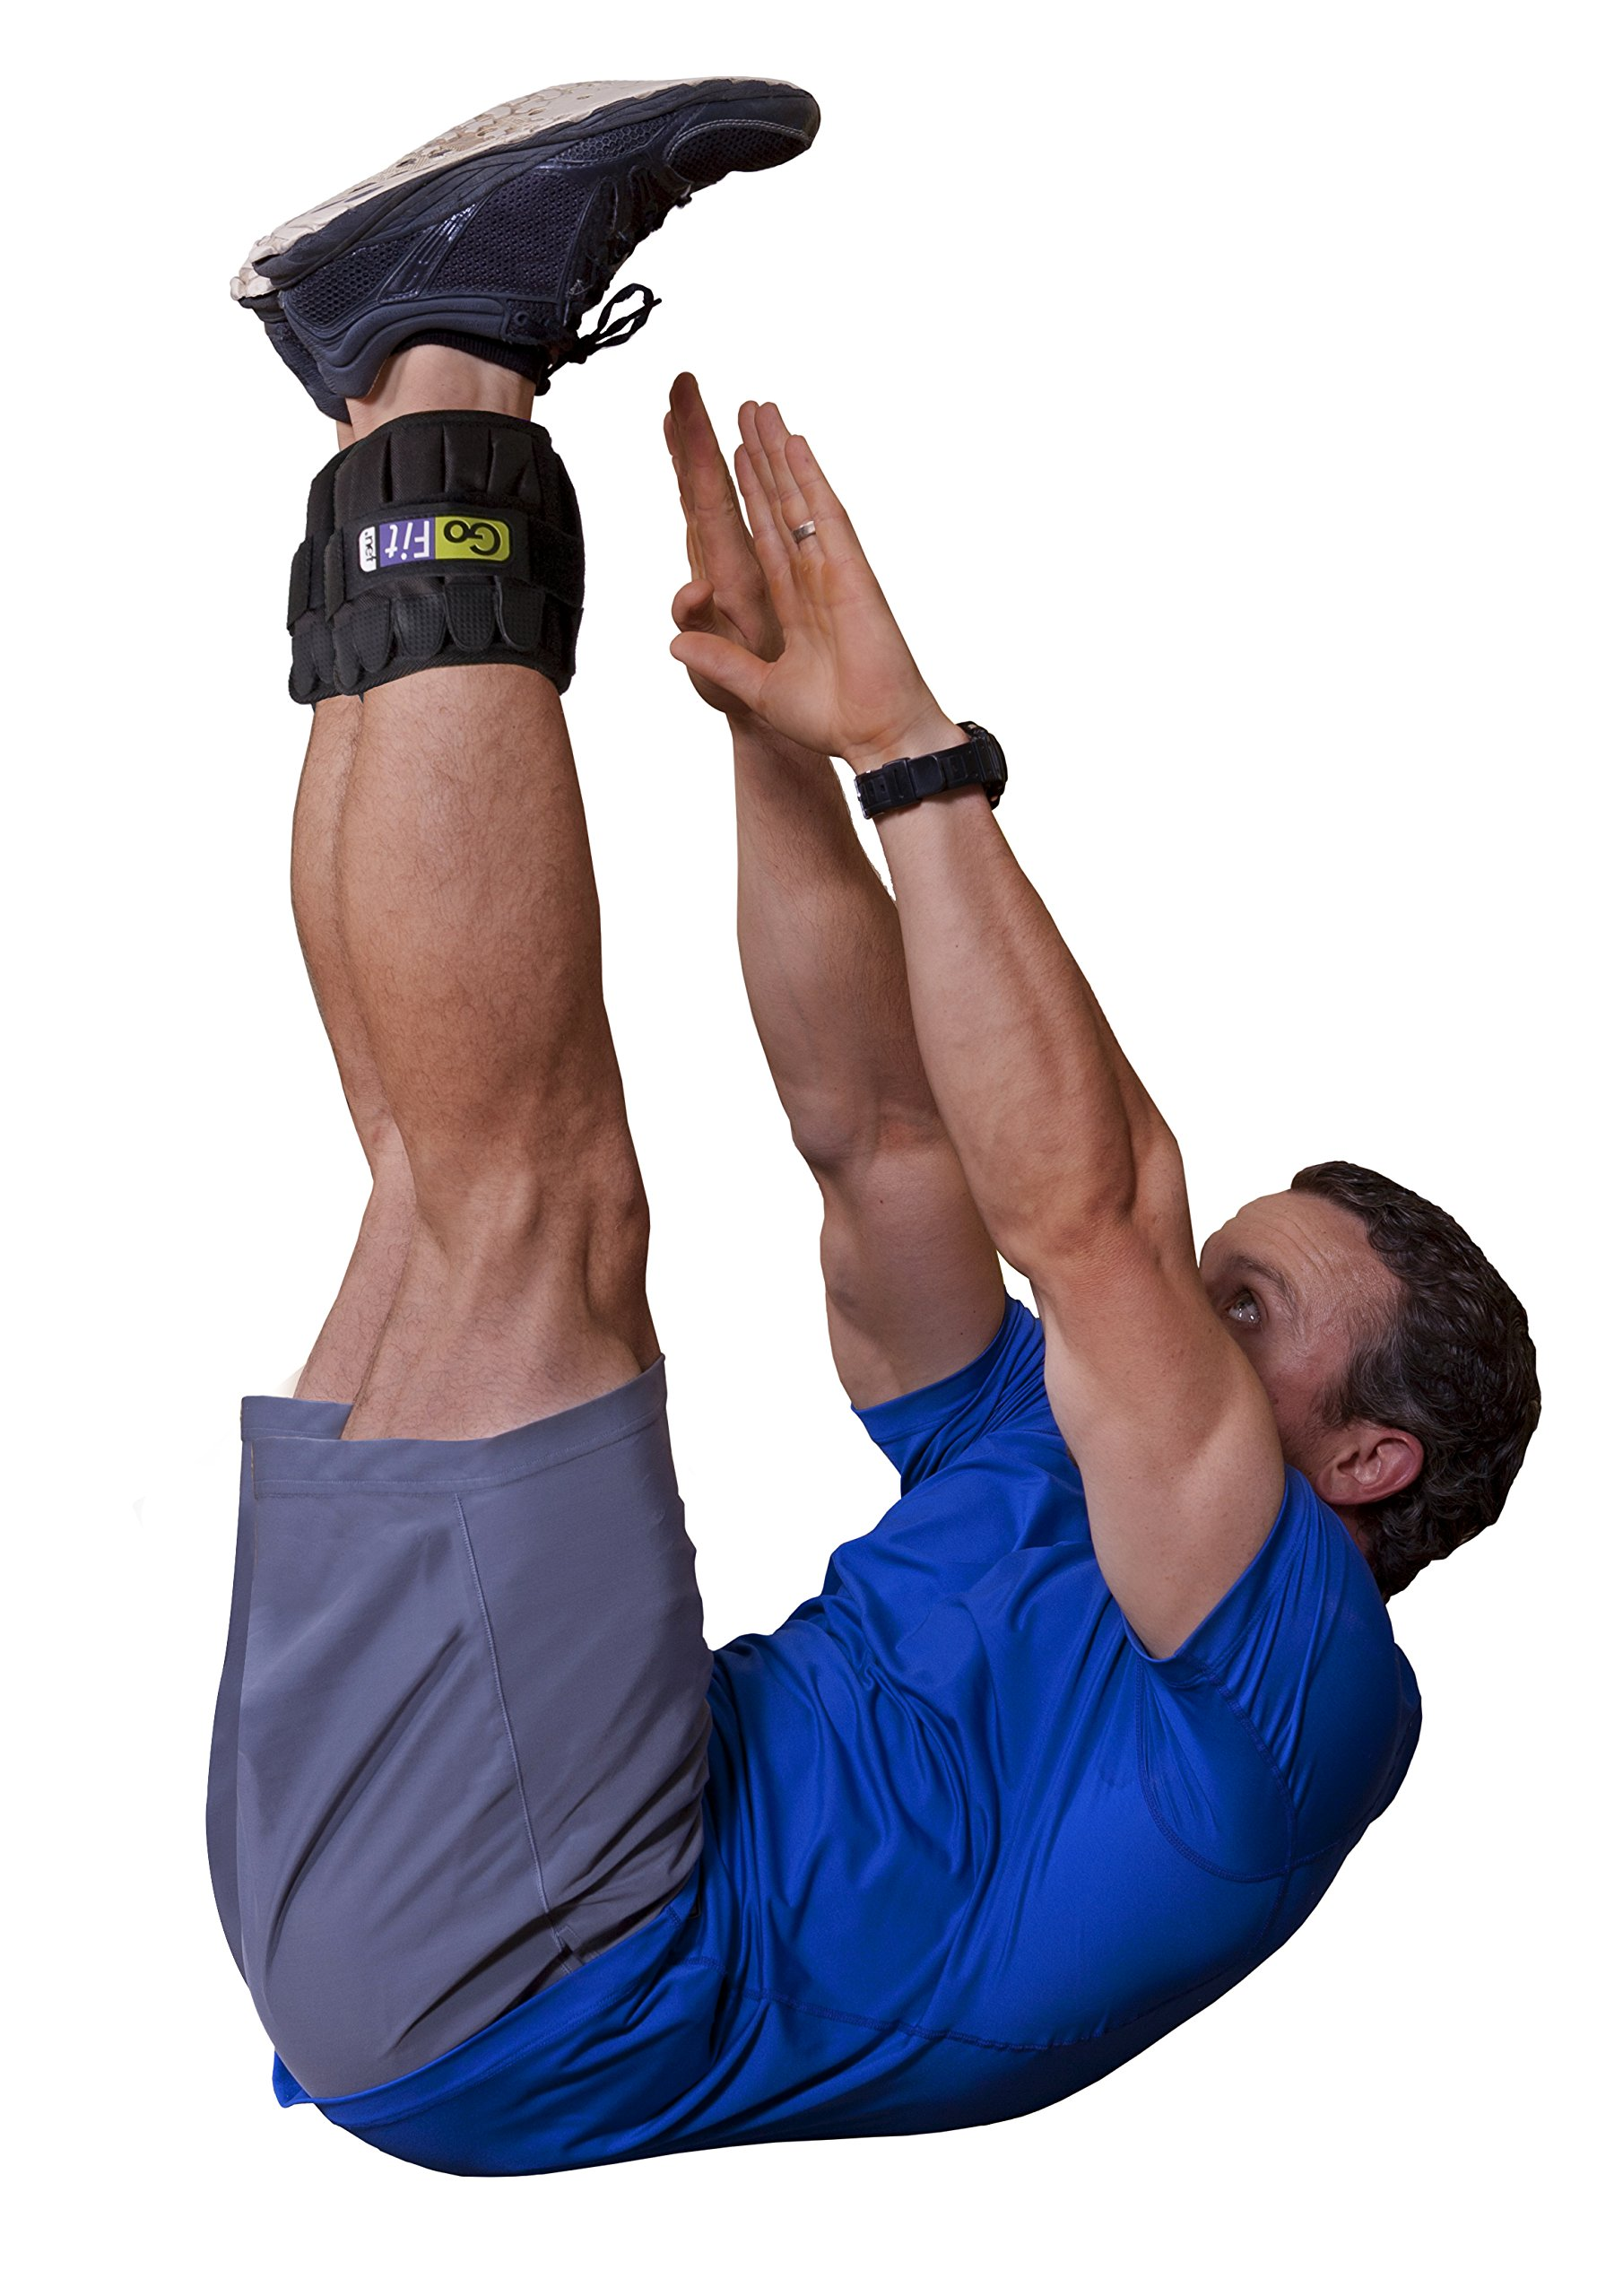 GoFit Padded, Adjustable Ankle Weight Set - Comfortable Training and Rehabilitation Gear by GoFit (Image #7)